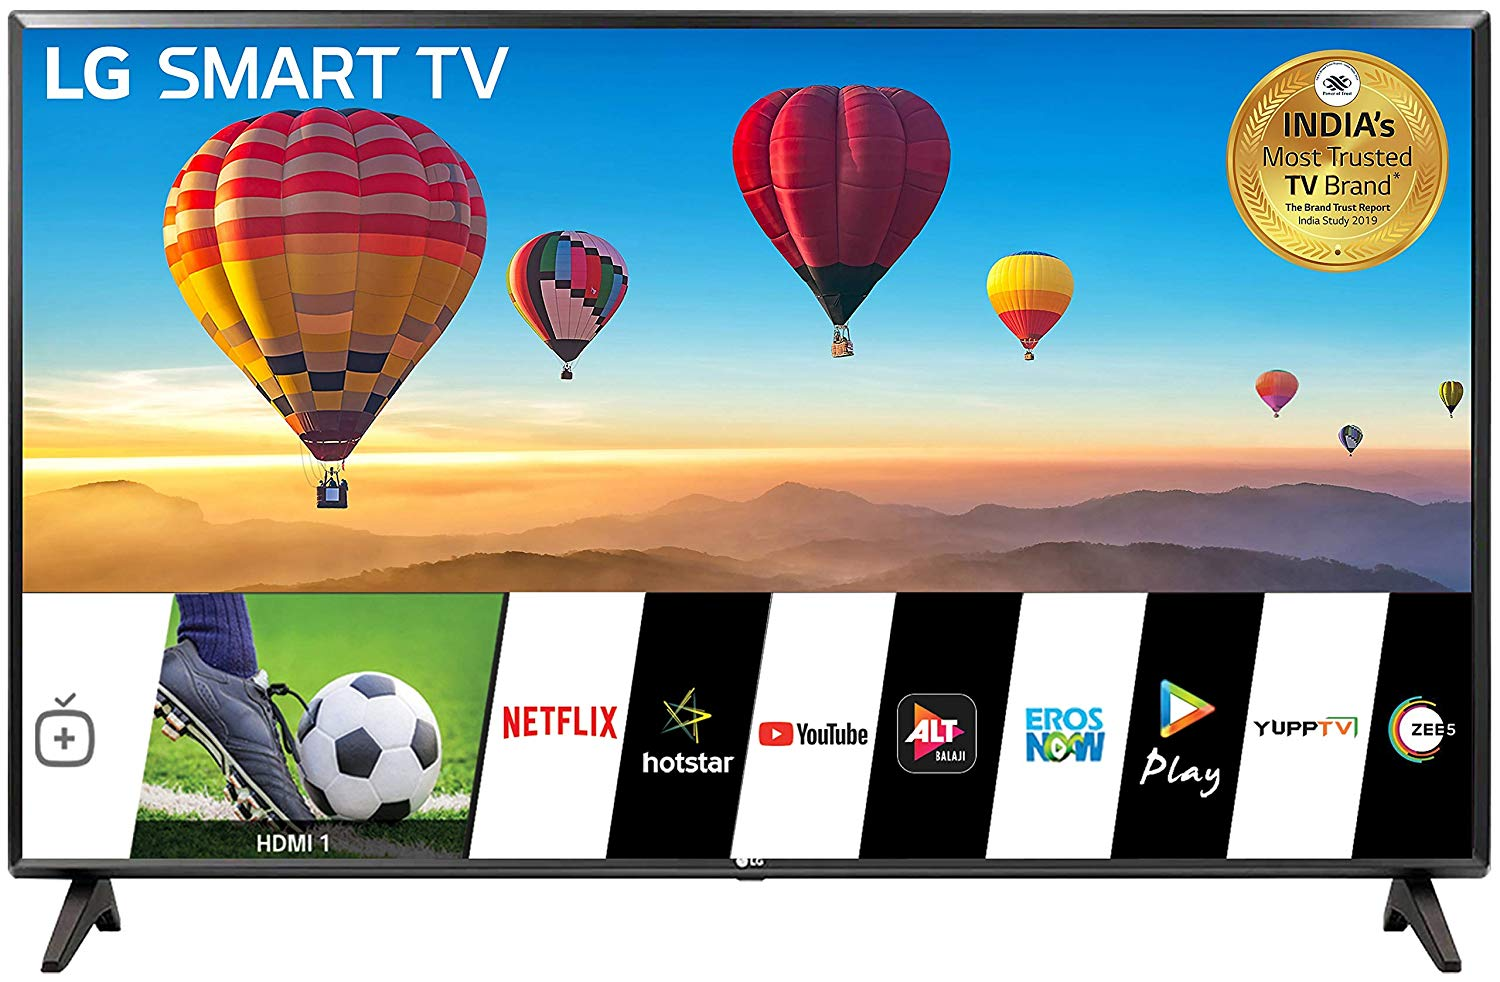 LG 80 cms (32 Inches) Smart TV 32LM560BPTC